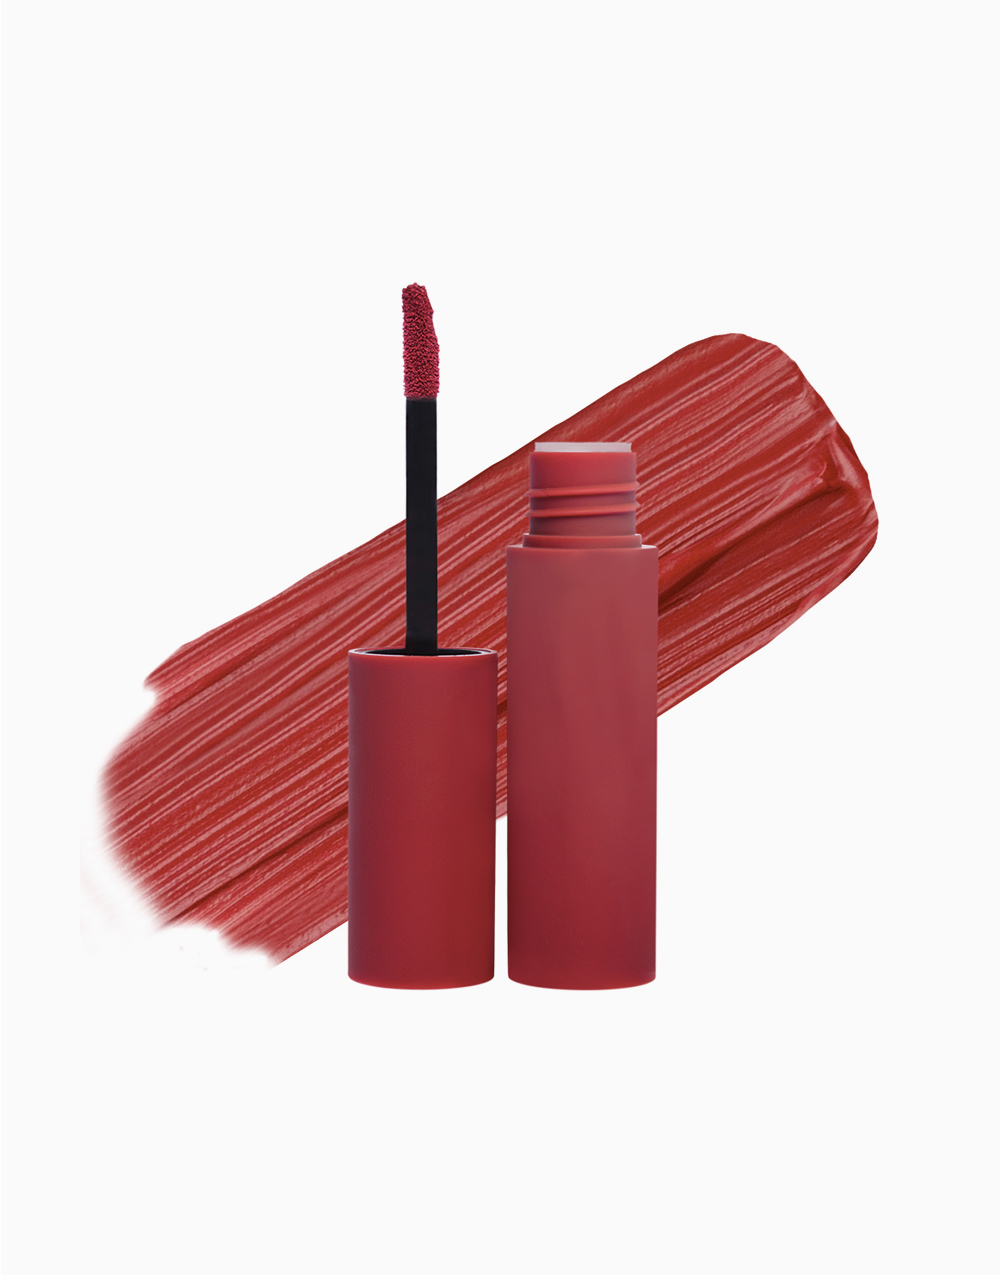 Sunnies Face Lip Dip [Whipped Matte Liquid Lipstick] (Girl Crush) by Sunnies Face